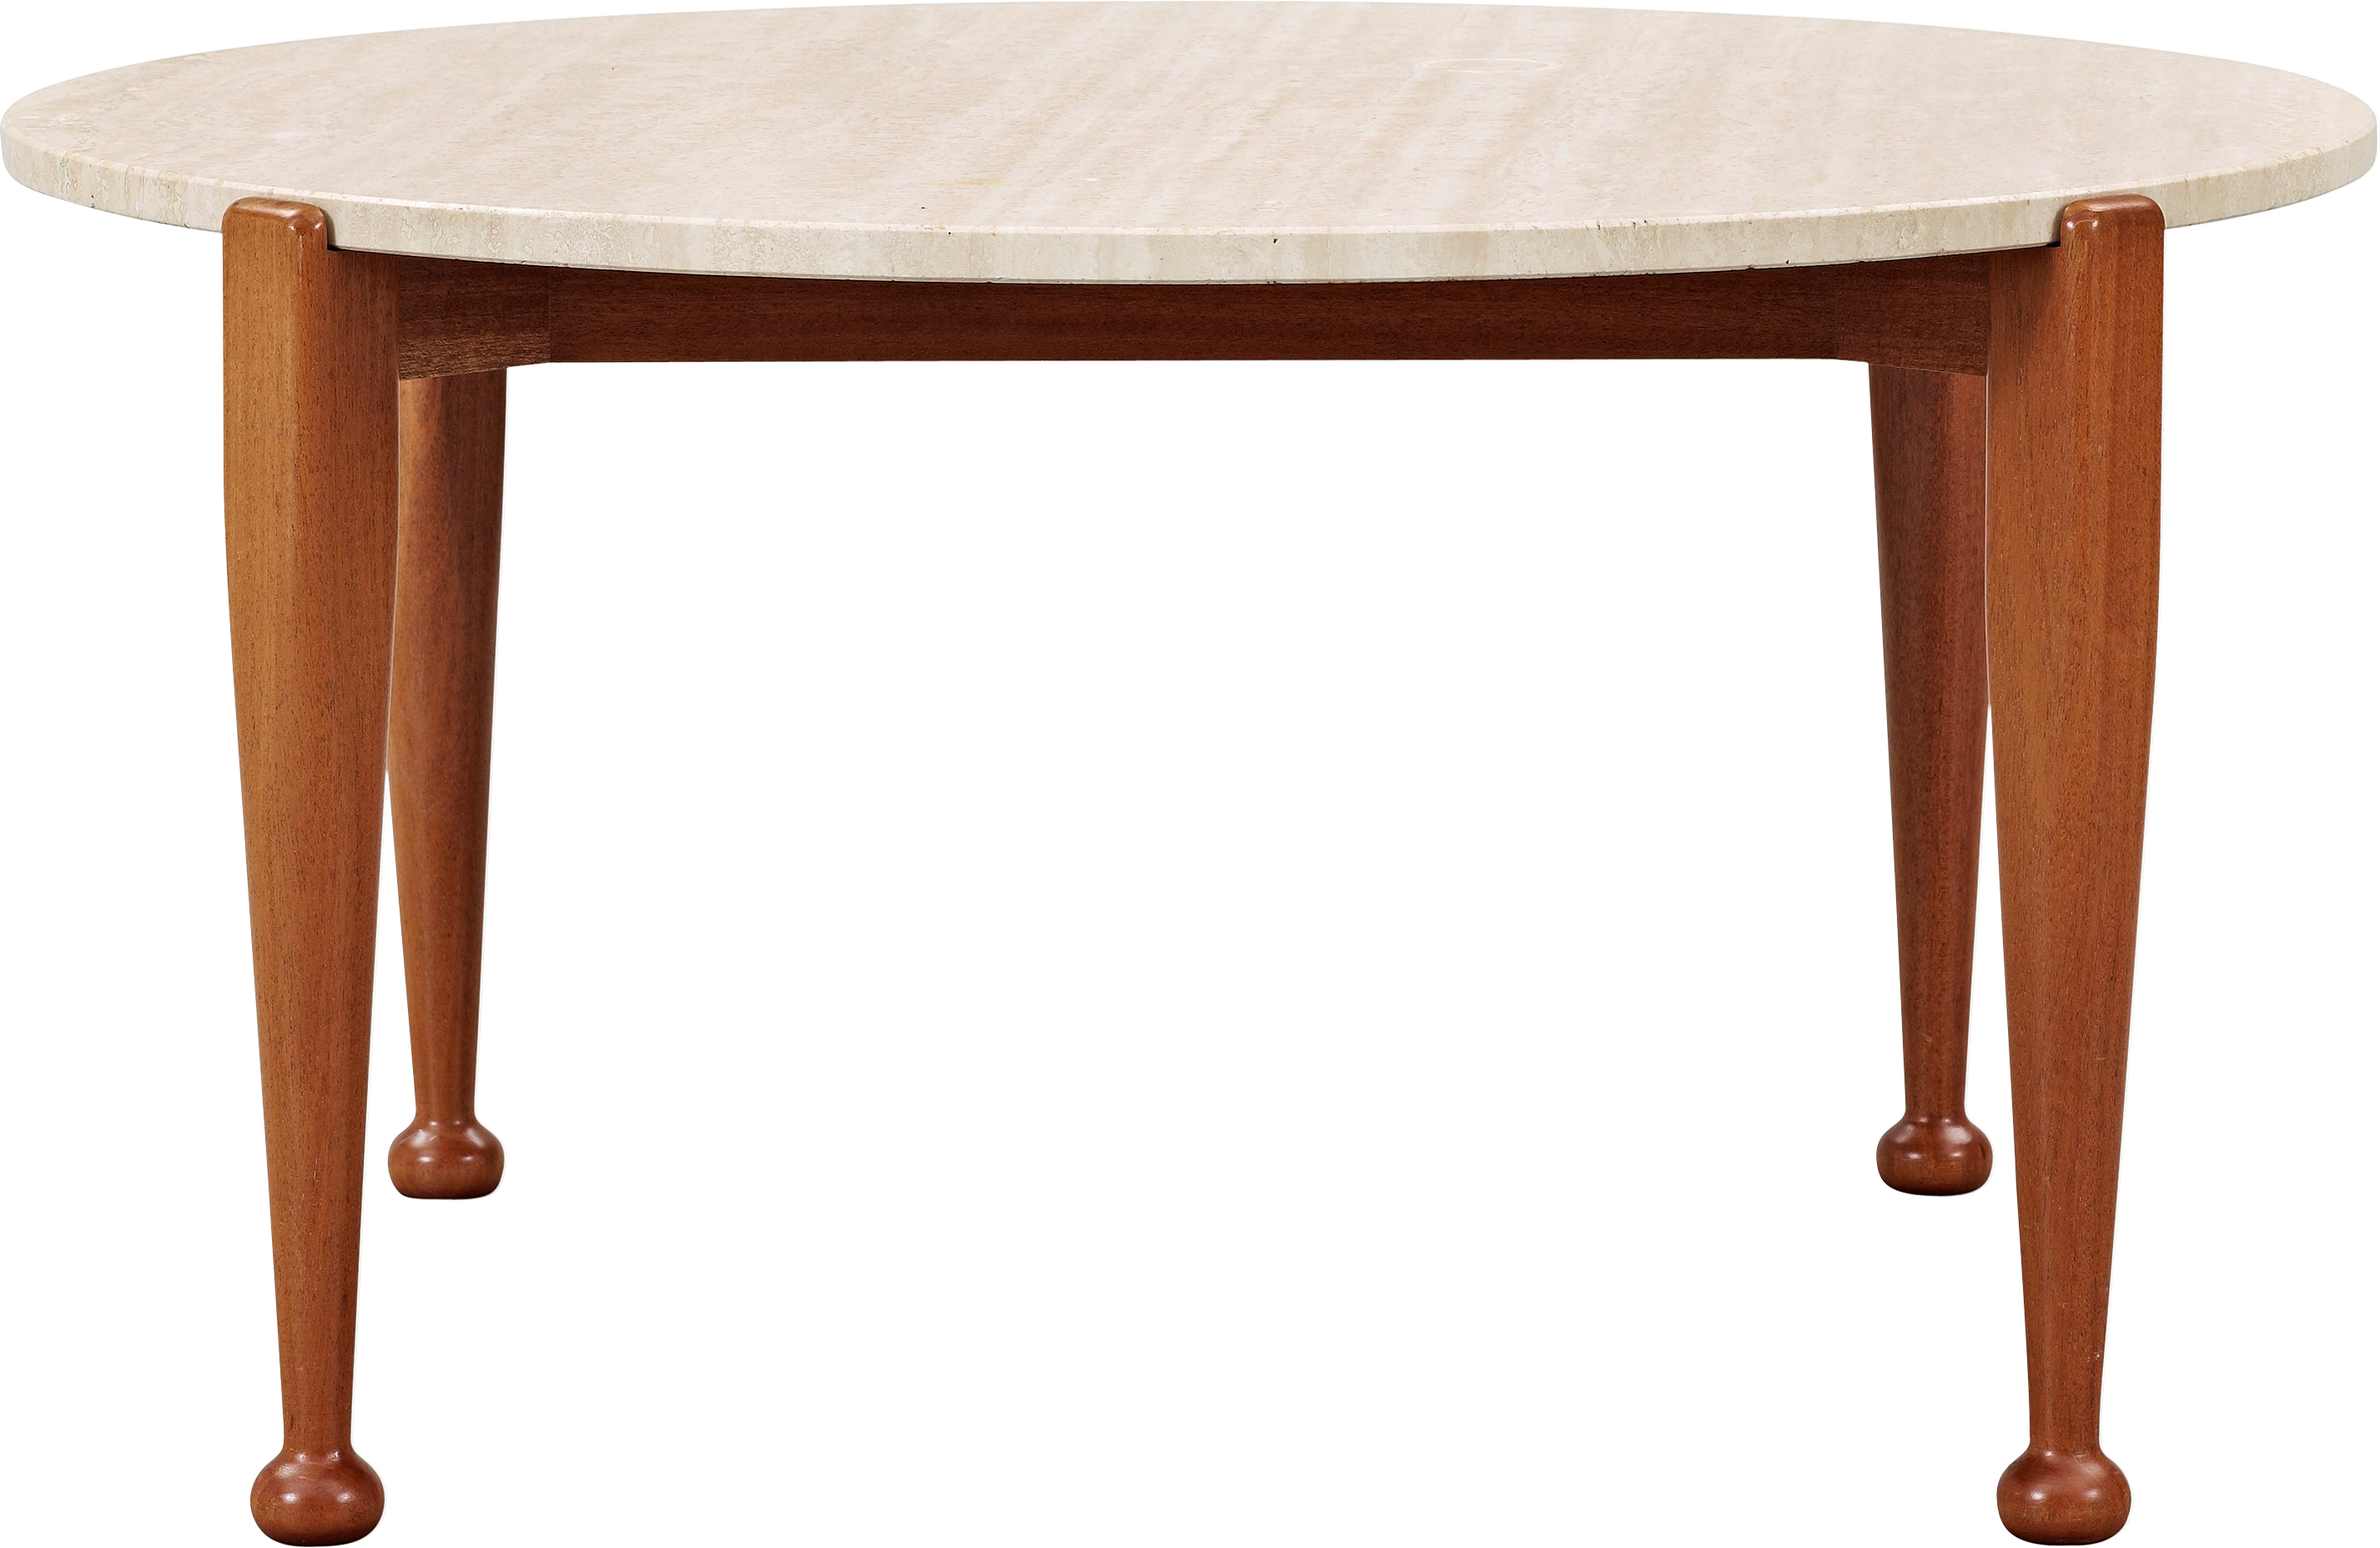 Table png. Image free download tables